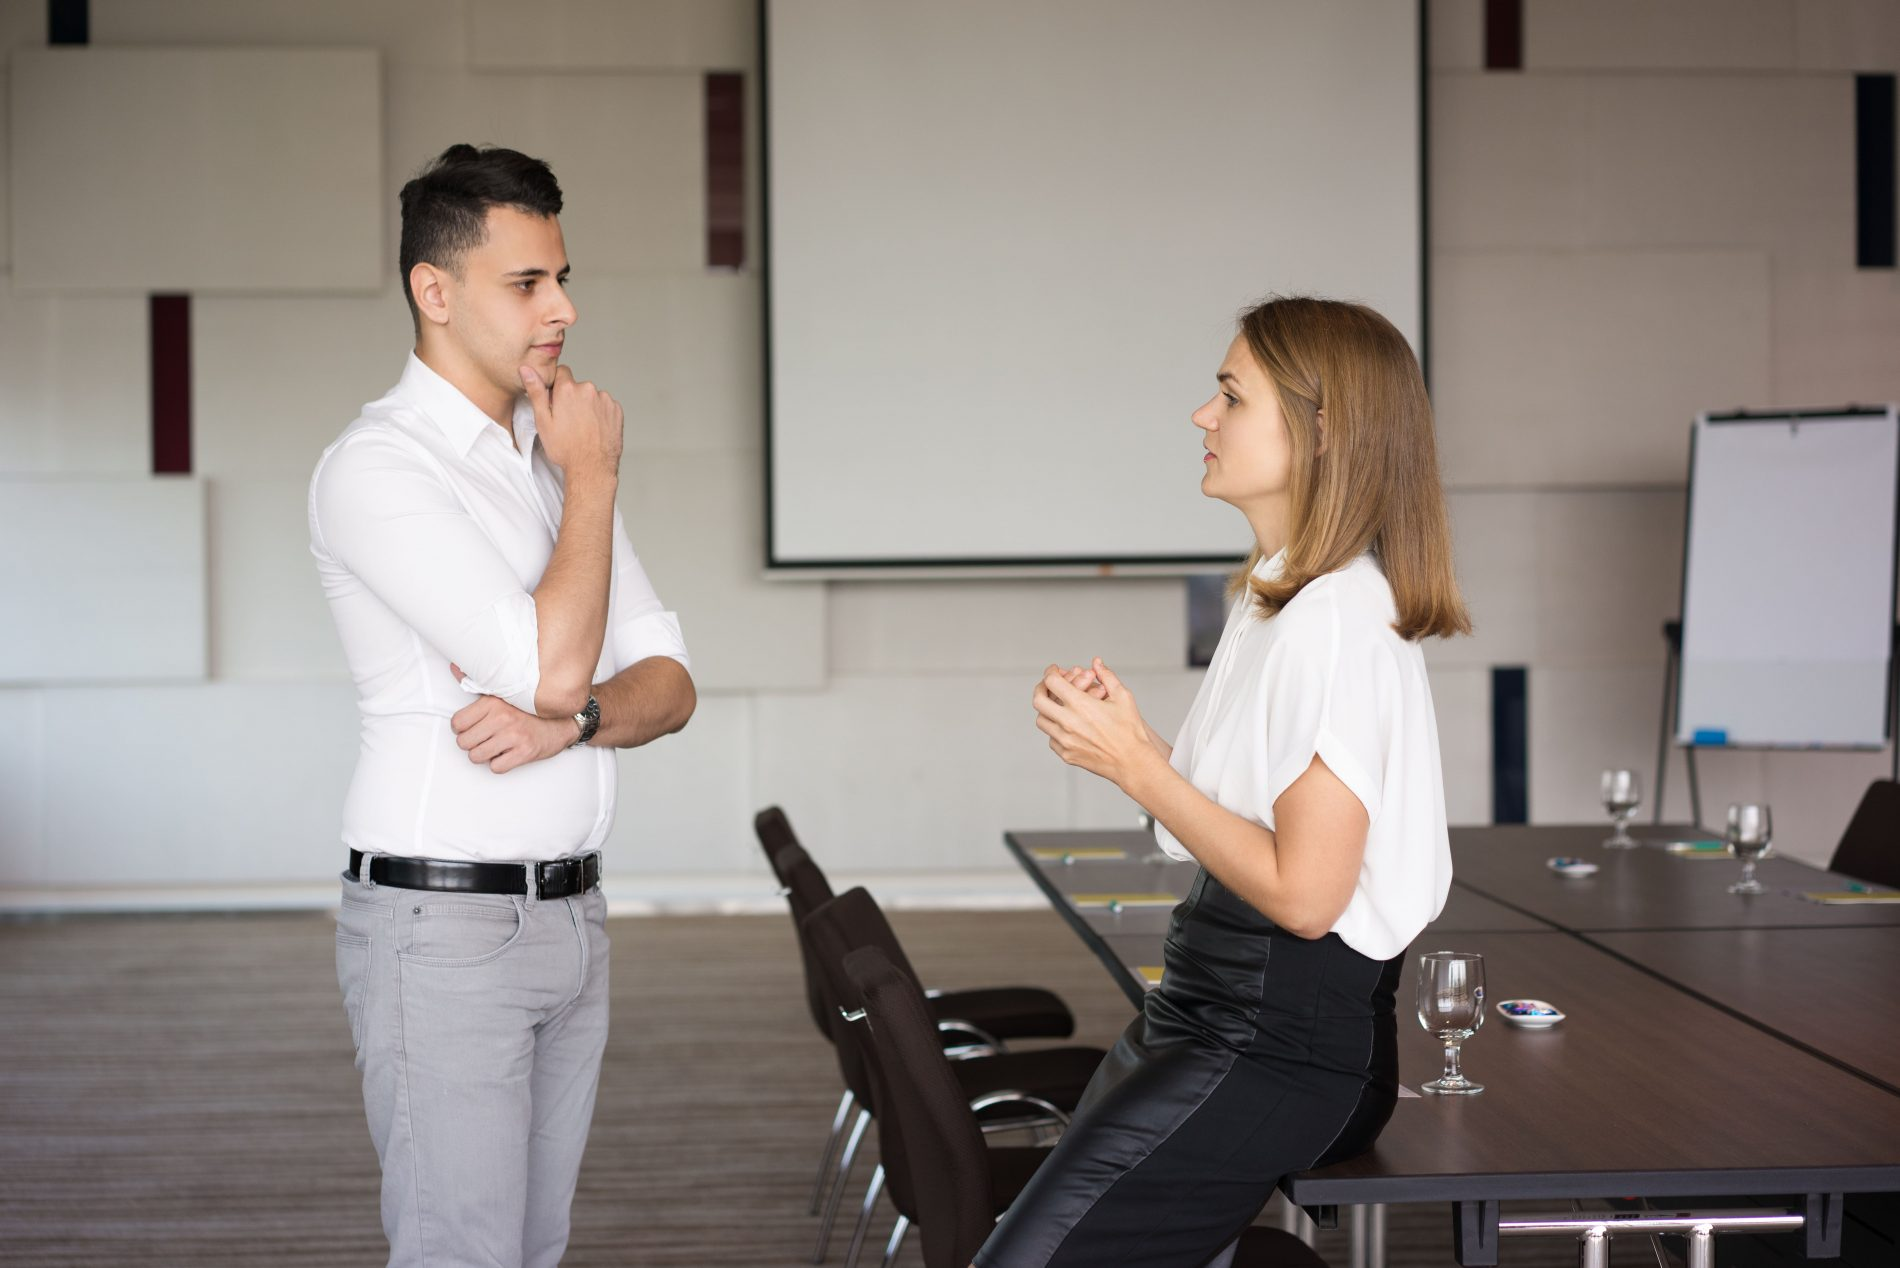 Handling difficult conversations at work: the four golden rules